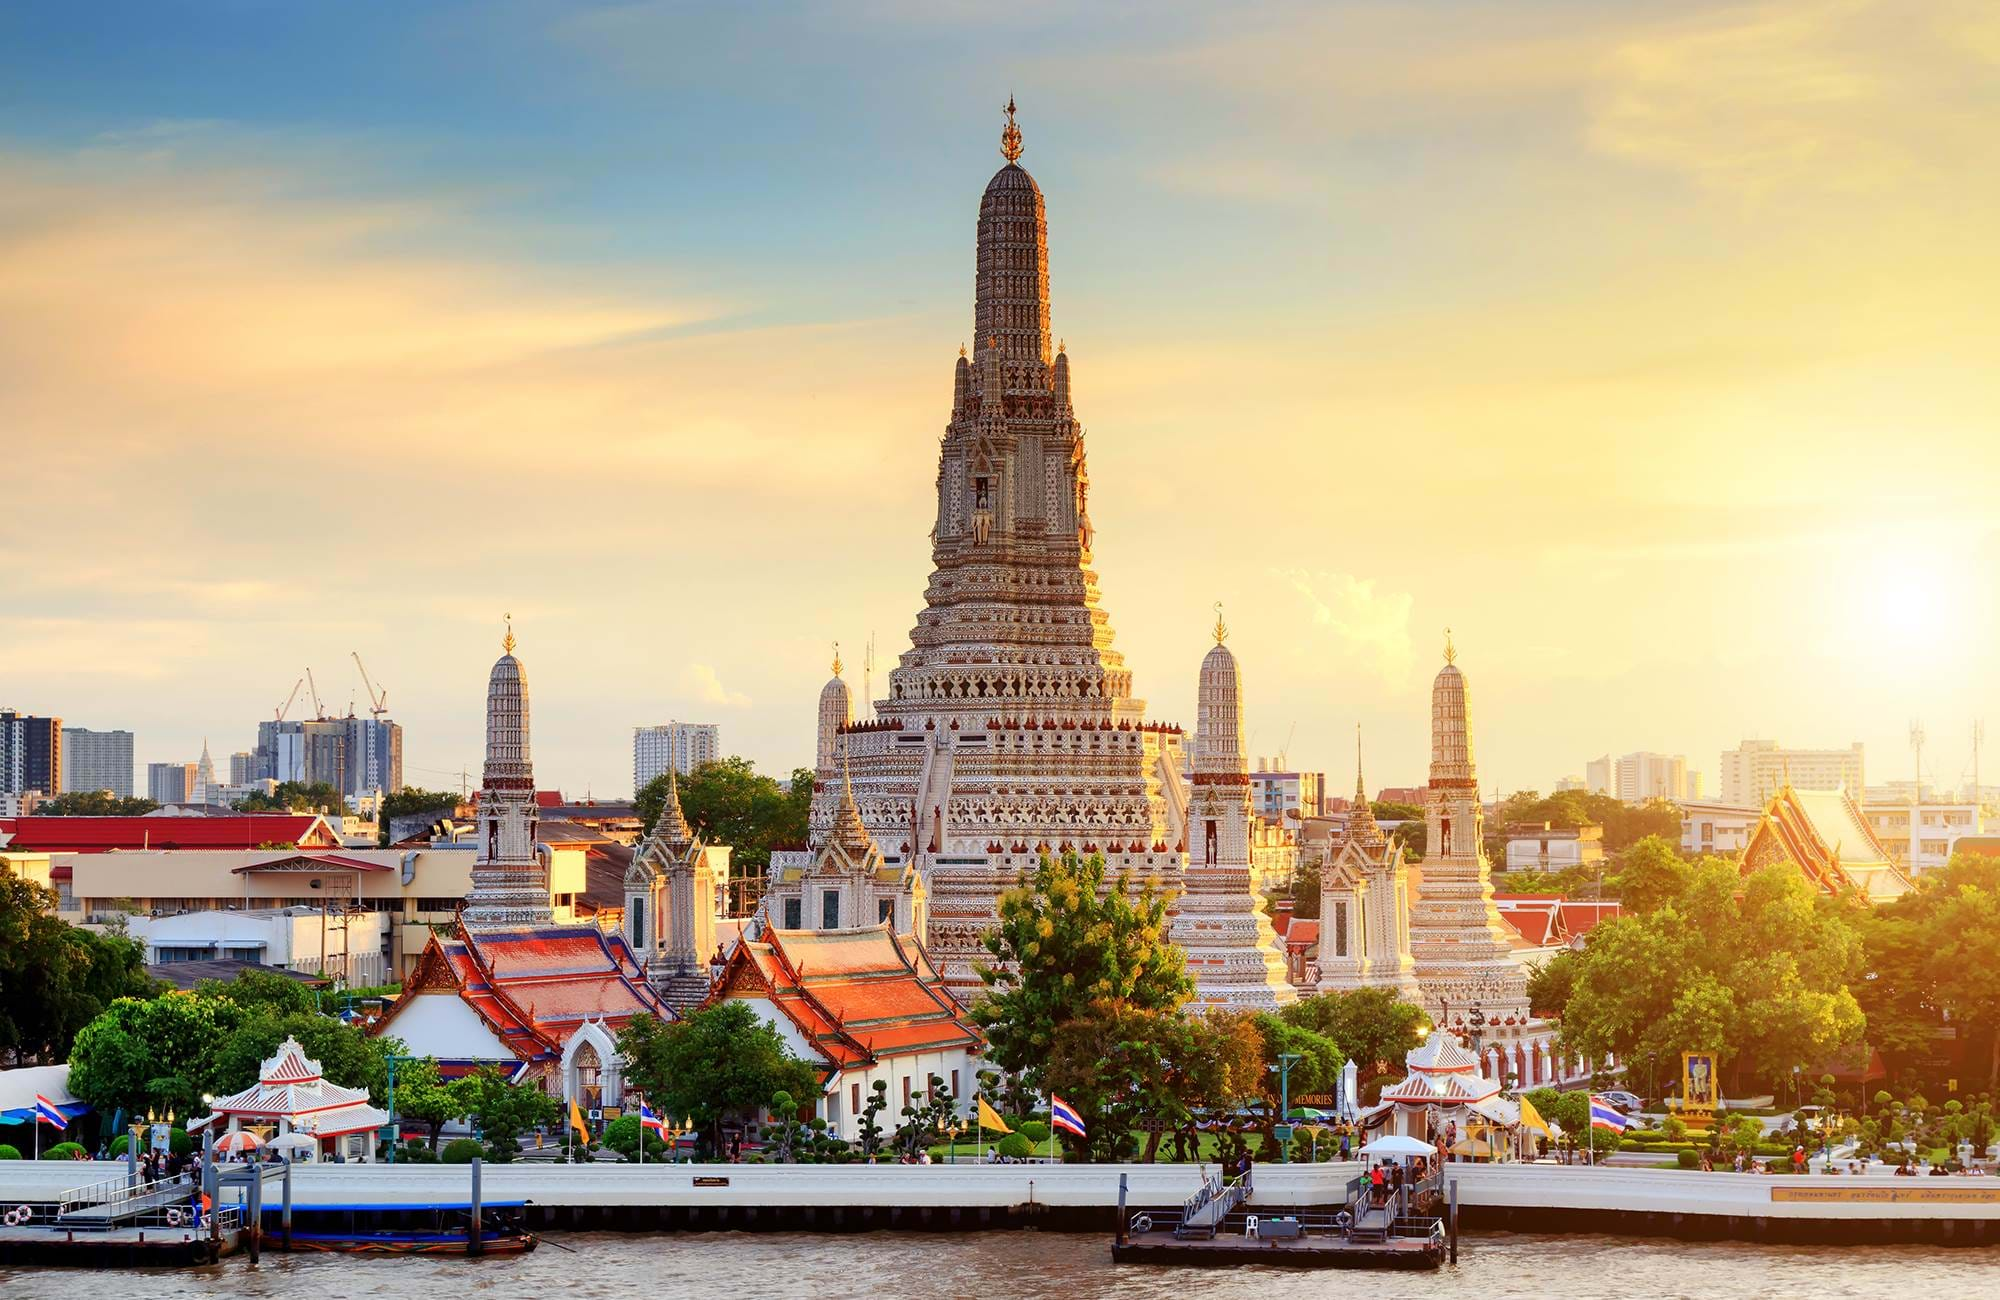 bangkok-wat-arun-temple-at-sunset-cover